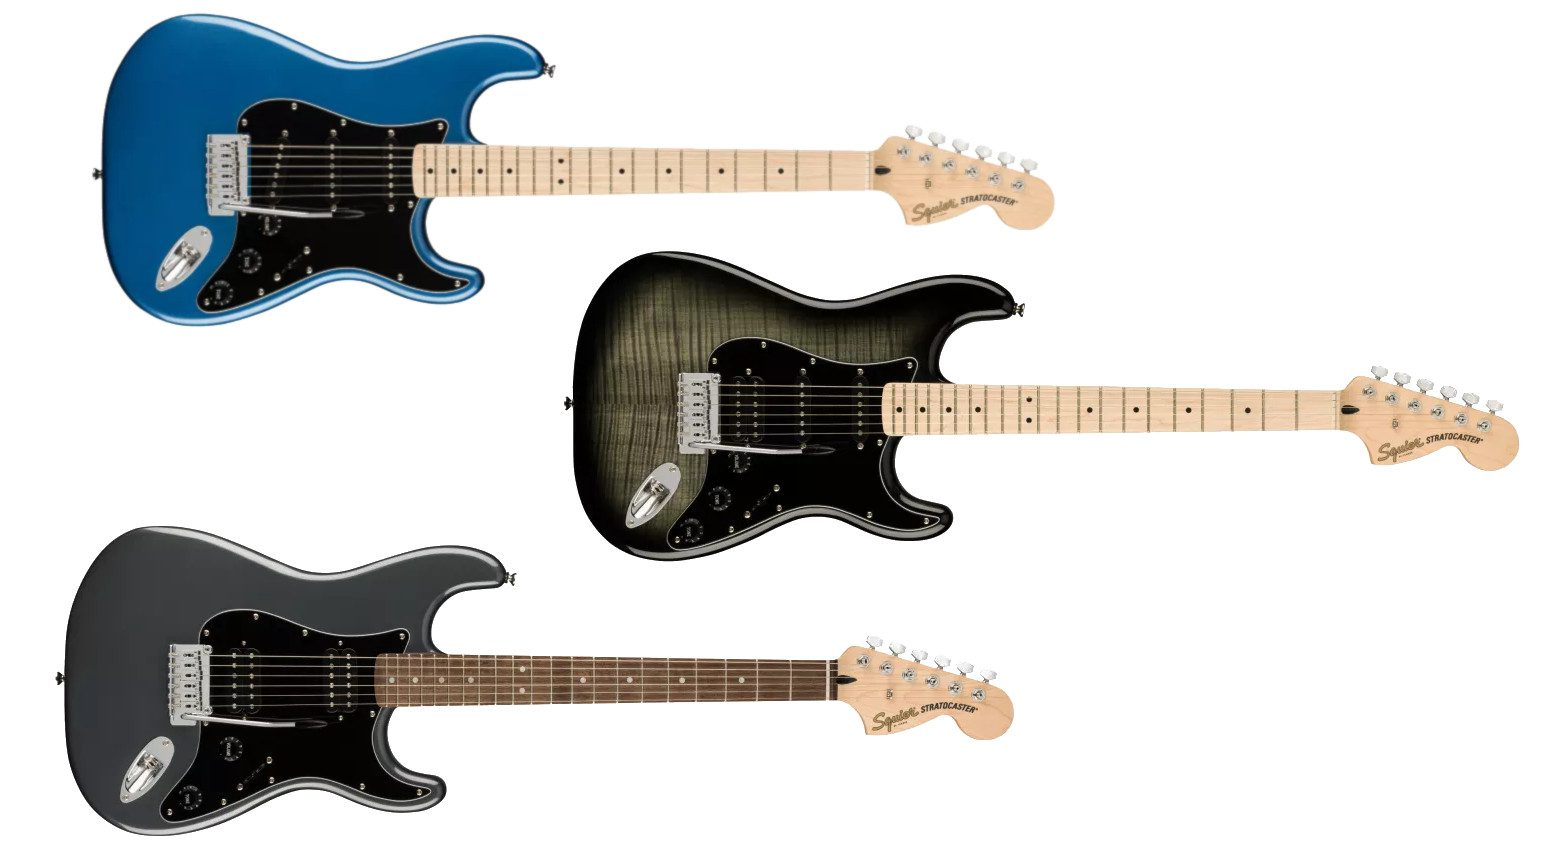 Fender Squier Affinity Stratocaster 2021